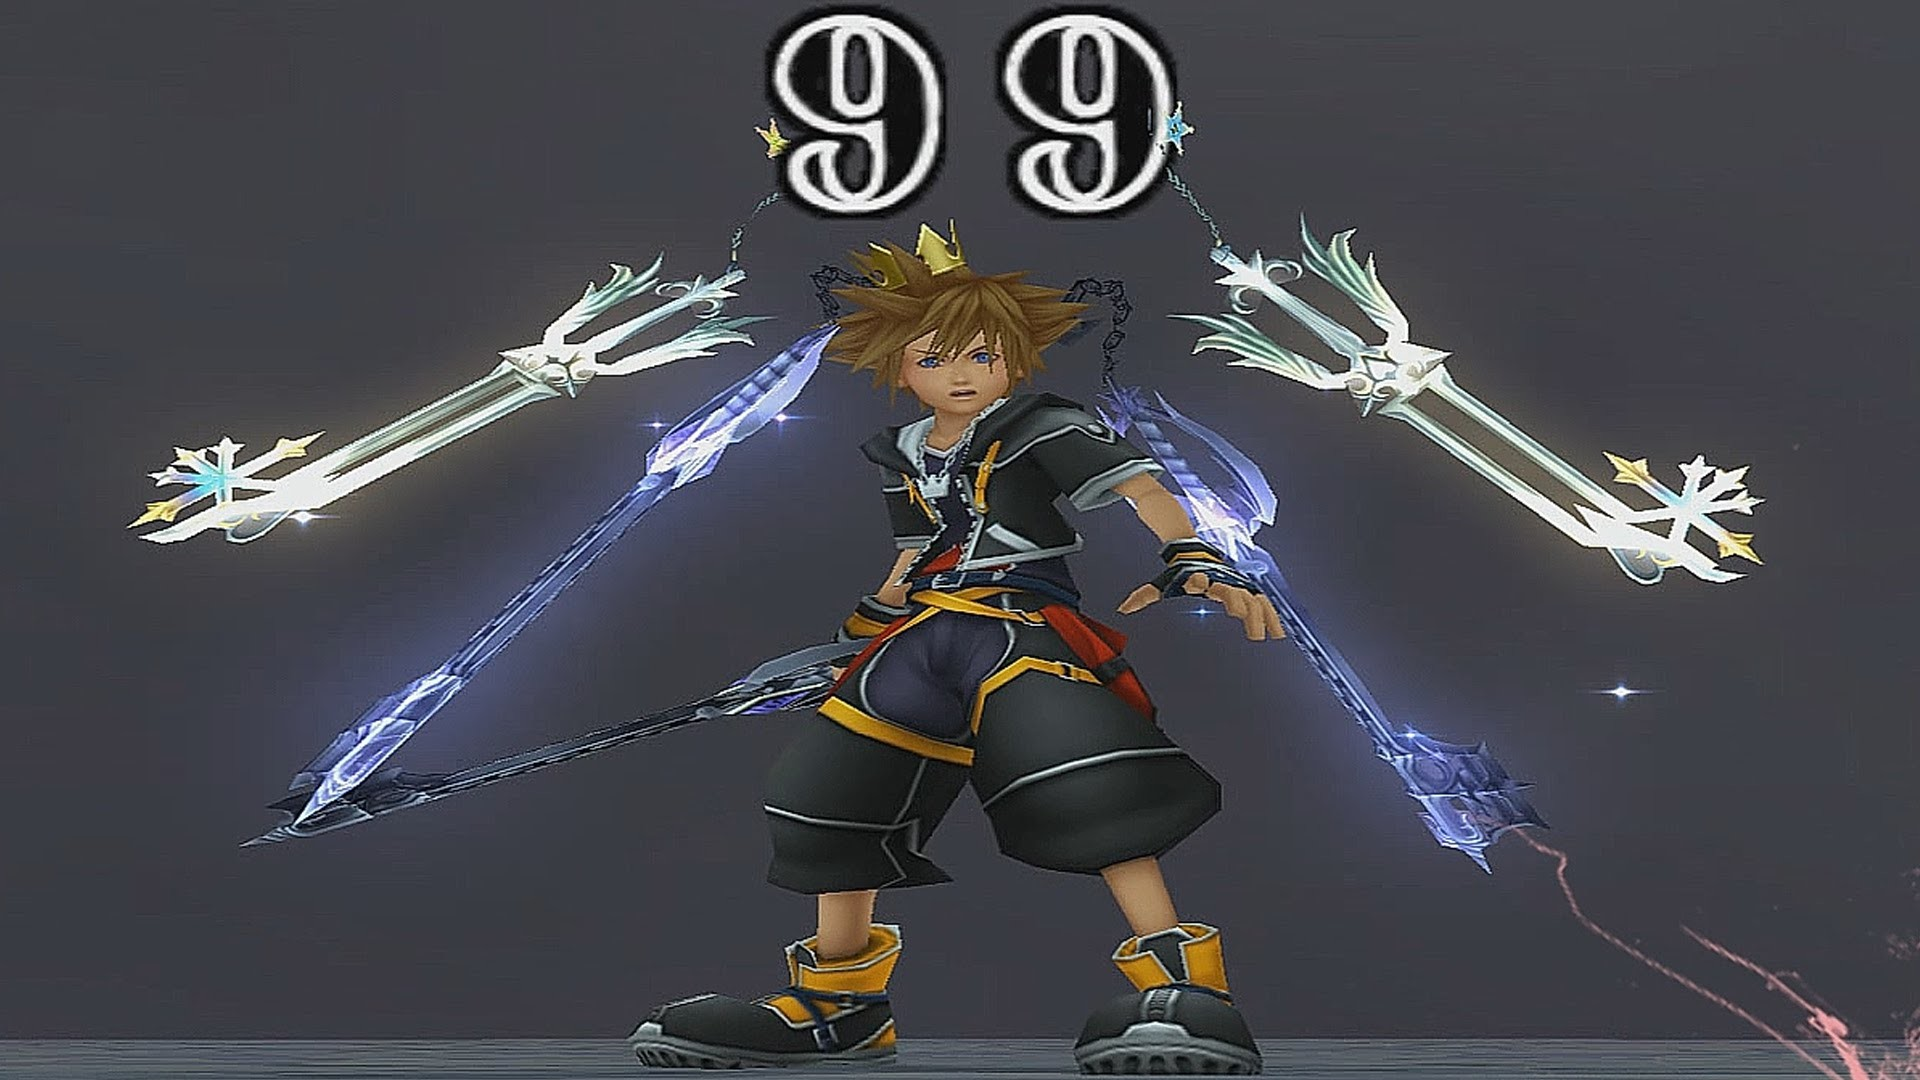 1920x1080 Kingdom Hearts II: Final Mix - Roxas Keyblades x2 (6 Keyblades) - YouTube